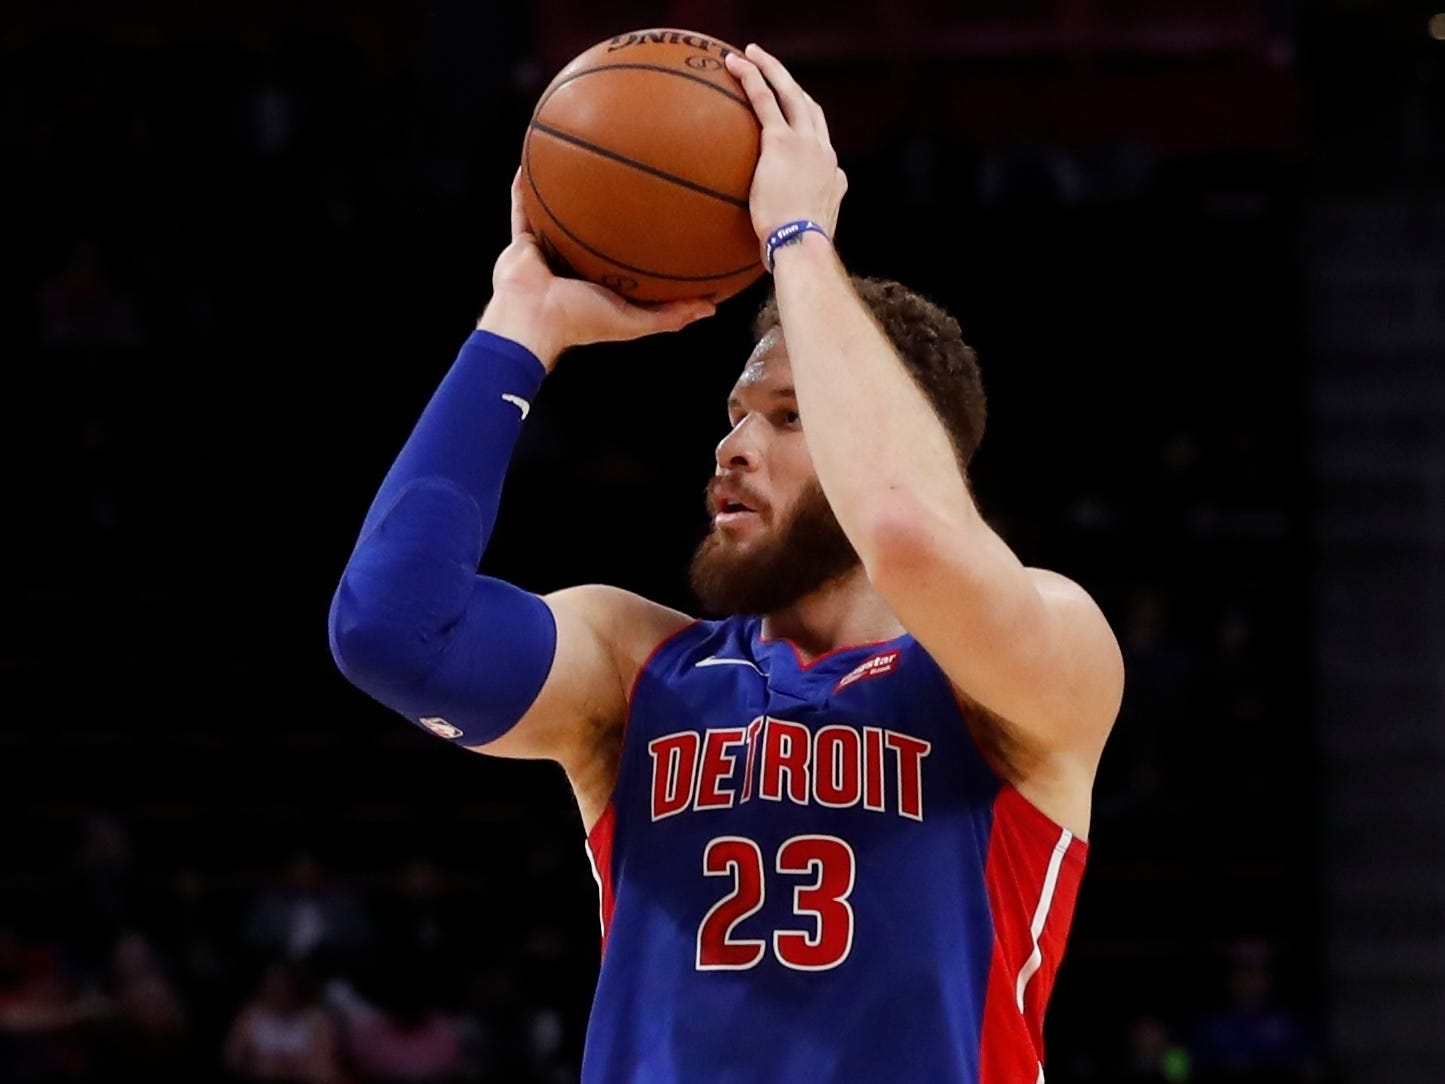 Detroit Pistons forward Blake Griffin shoots during the first half against the Washington Wizards, Monday, Feb. 11, 2019, in Detroit.